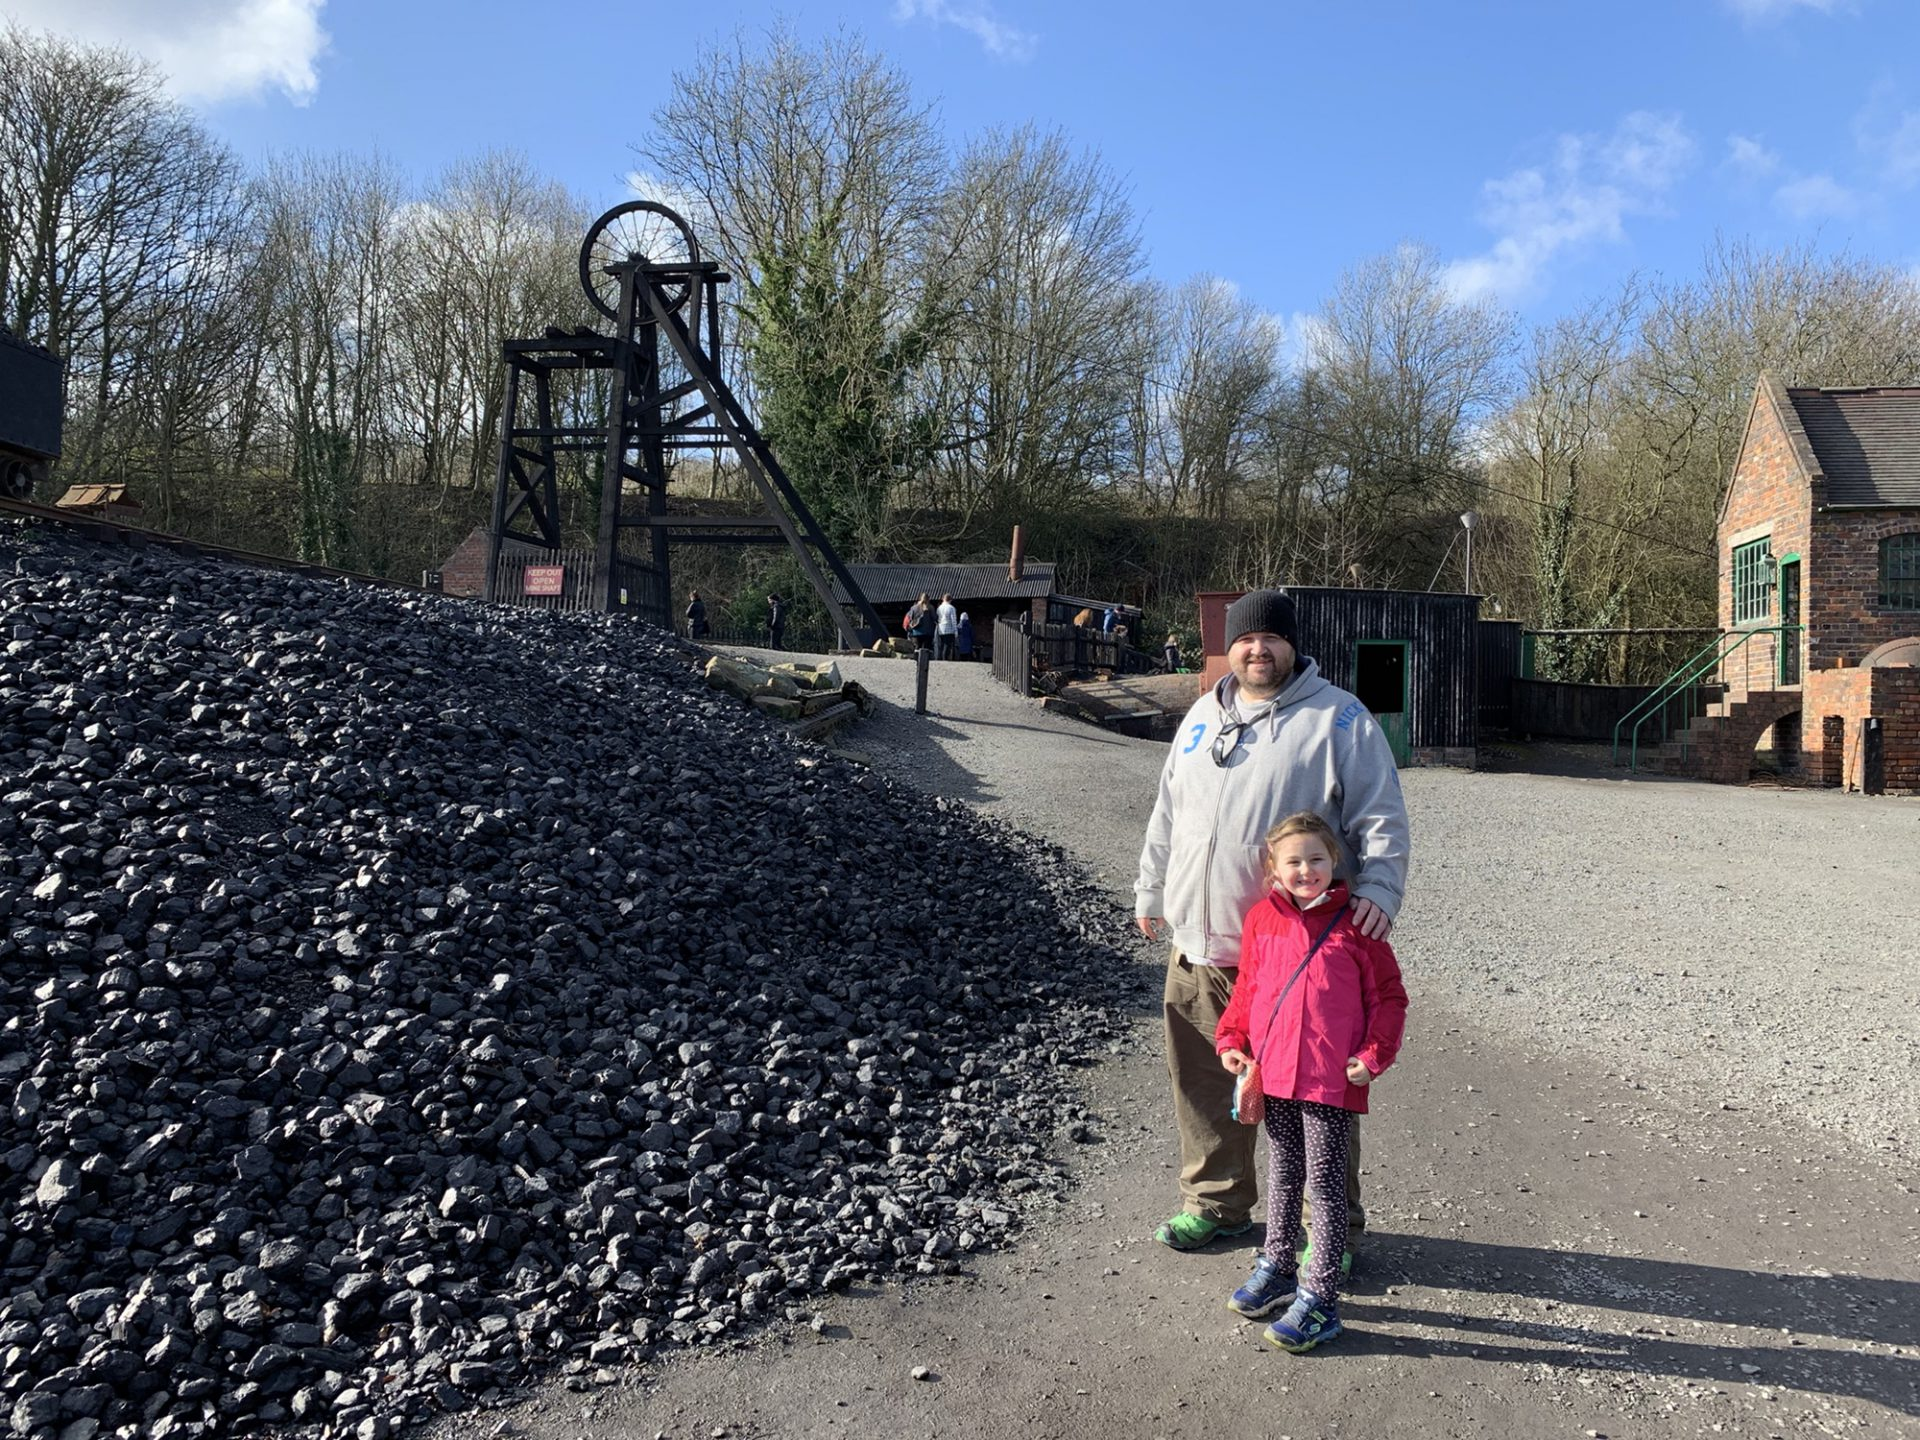 Review of The Black Country Living Museum